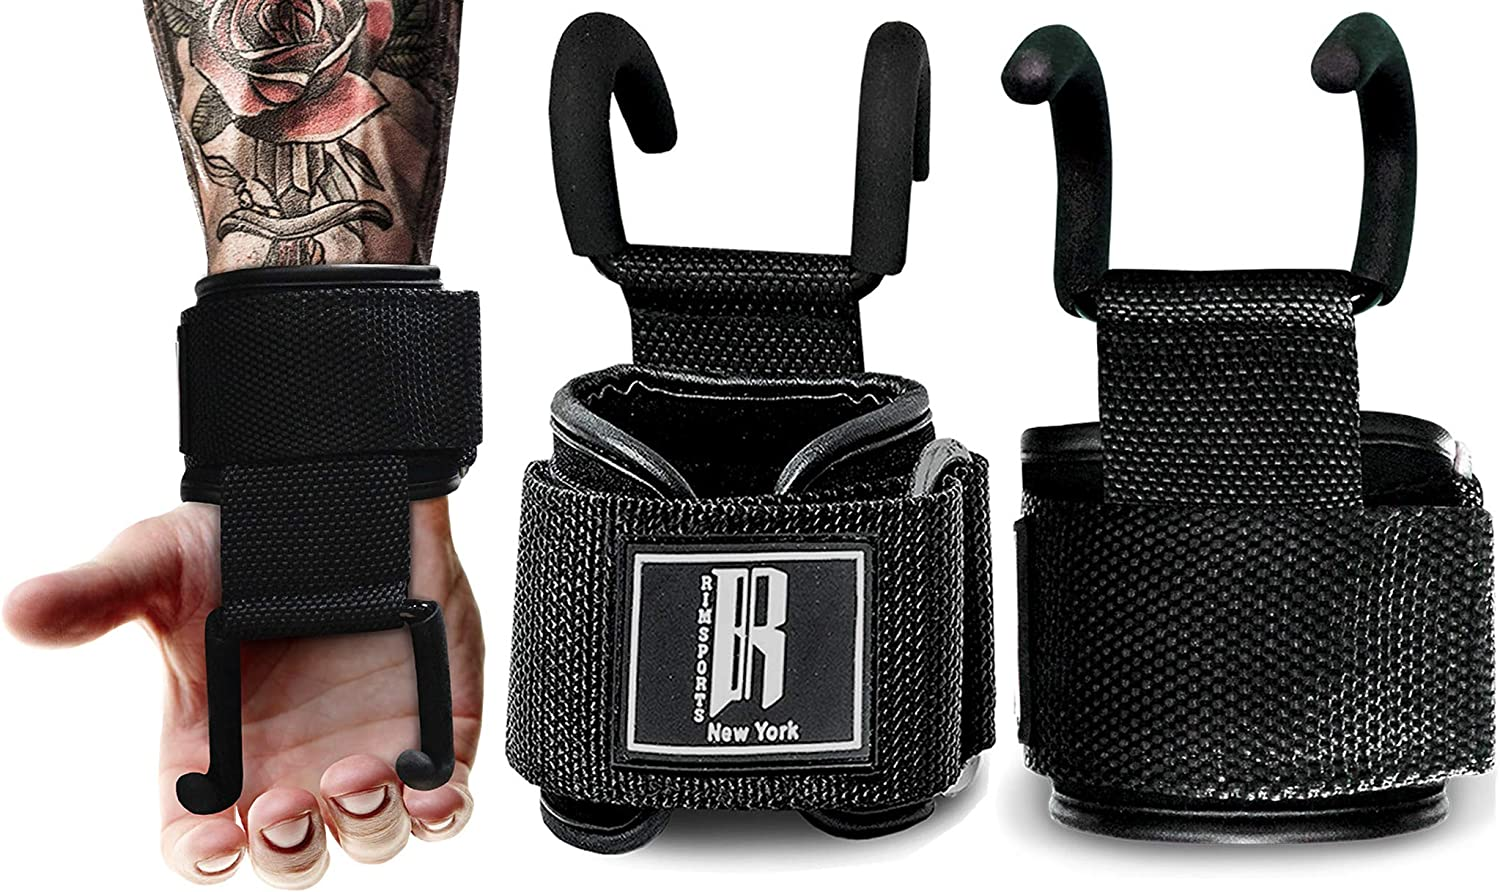 Weight Lifting Hooks Gym Training Deadlift Wrist Support Grips Straps Wrap Glove